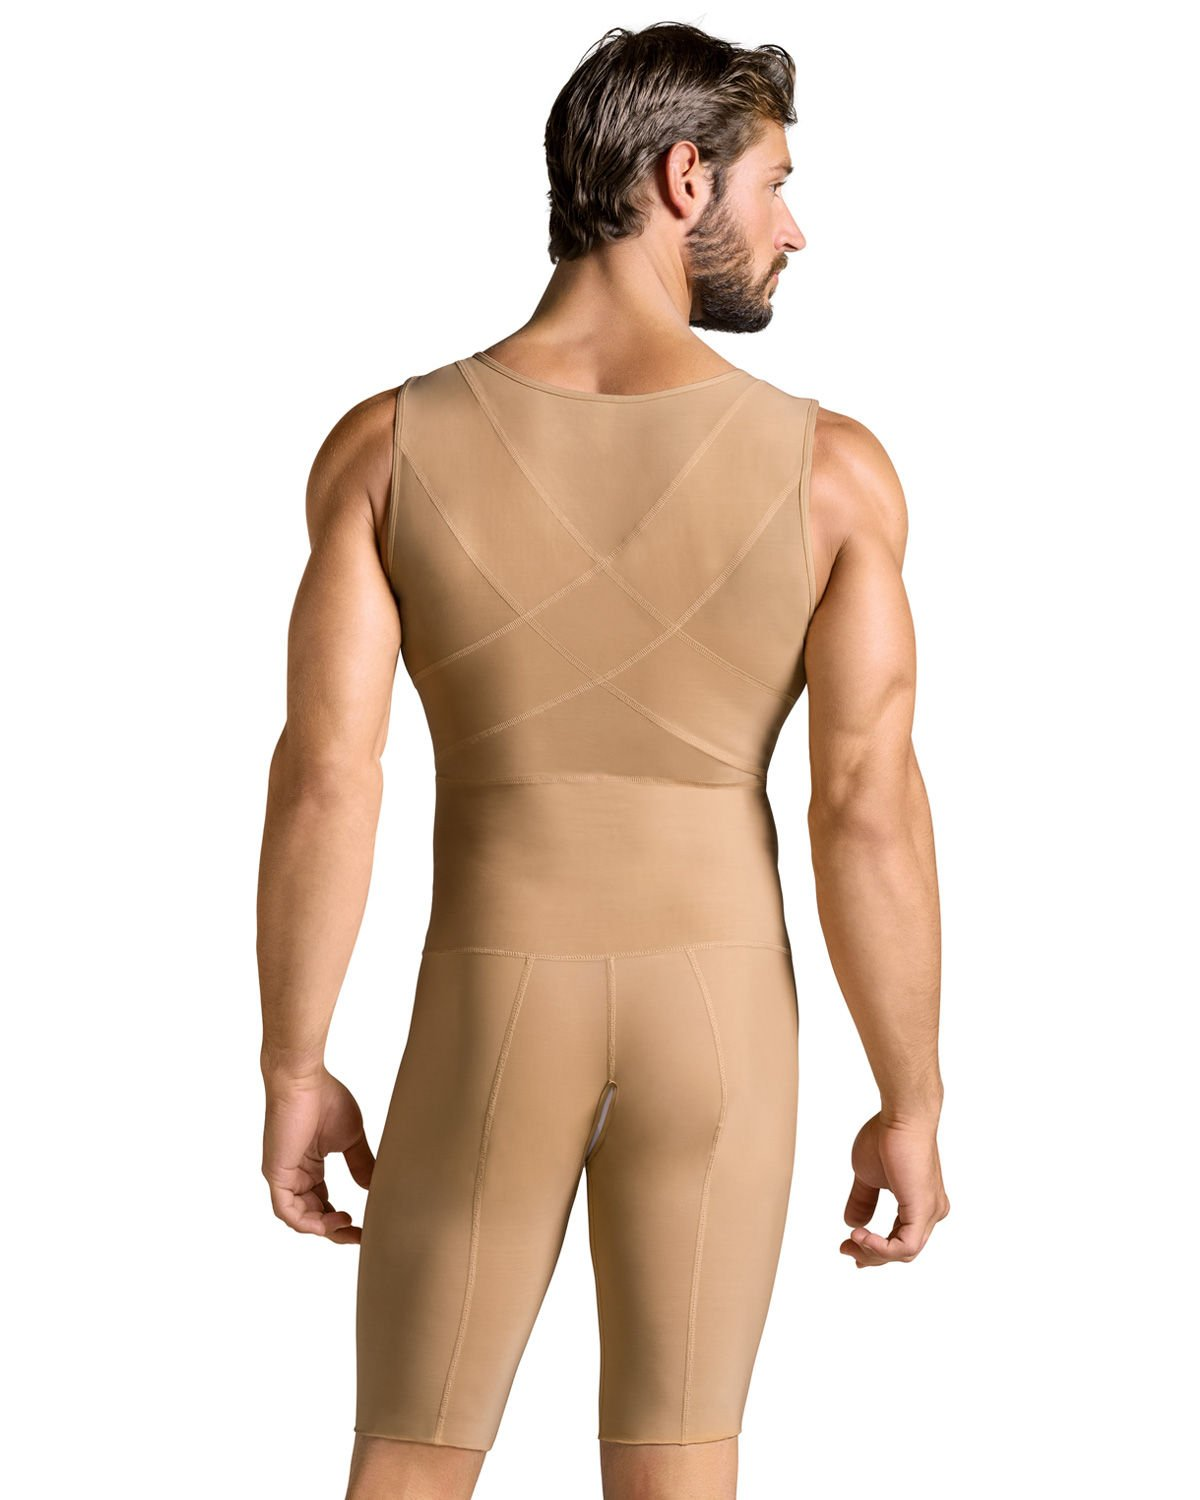 Leo Mens Post-Surgical and Slimming Firm Compression Bodysuit Shaper,Beige,Medium